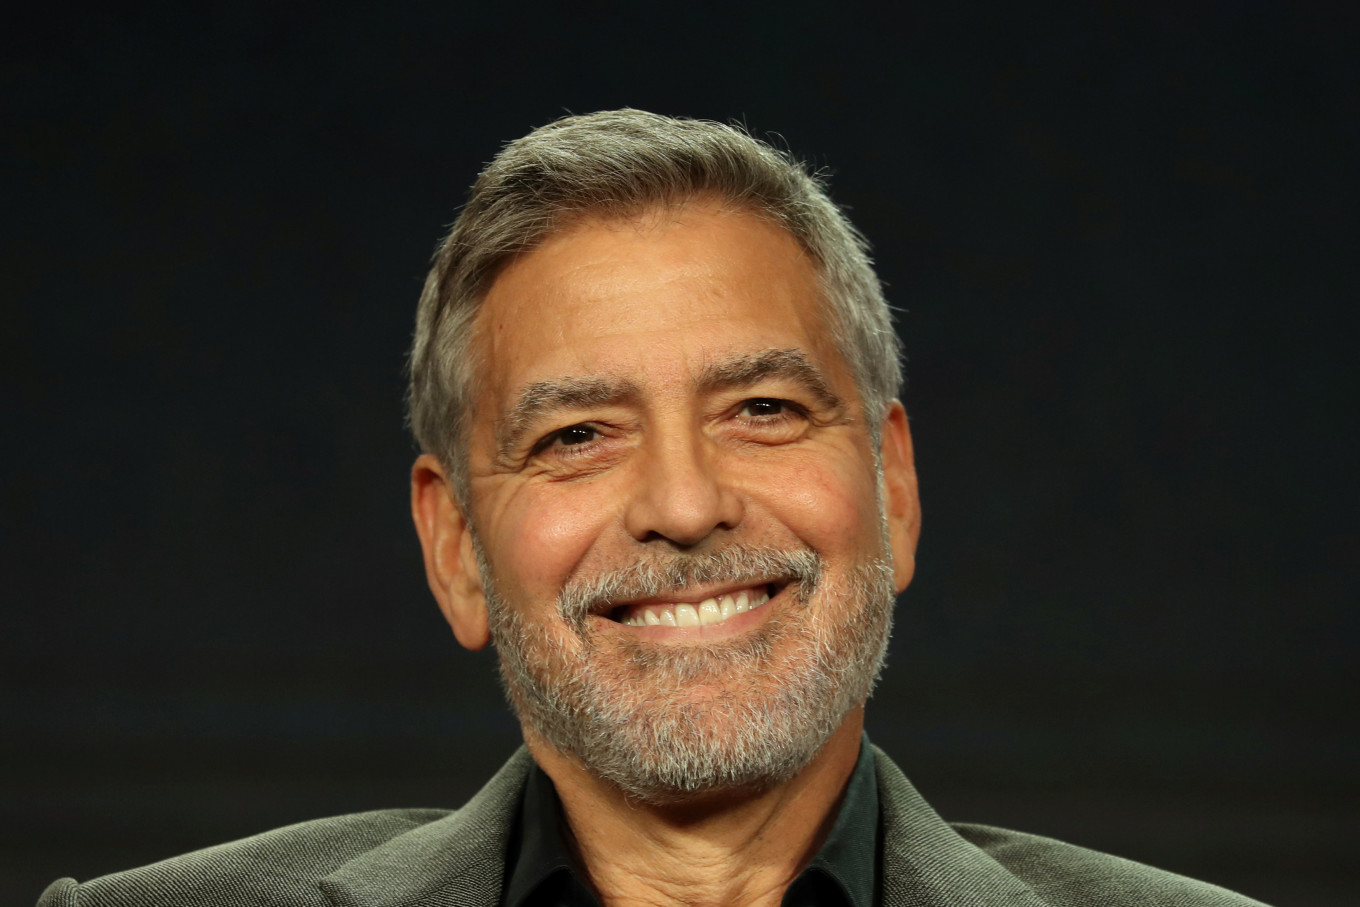 George Clooney misfires among LGBT+ activists over 'warning shot' to Brunei neighbors